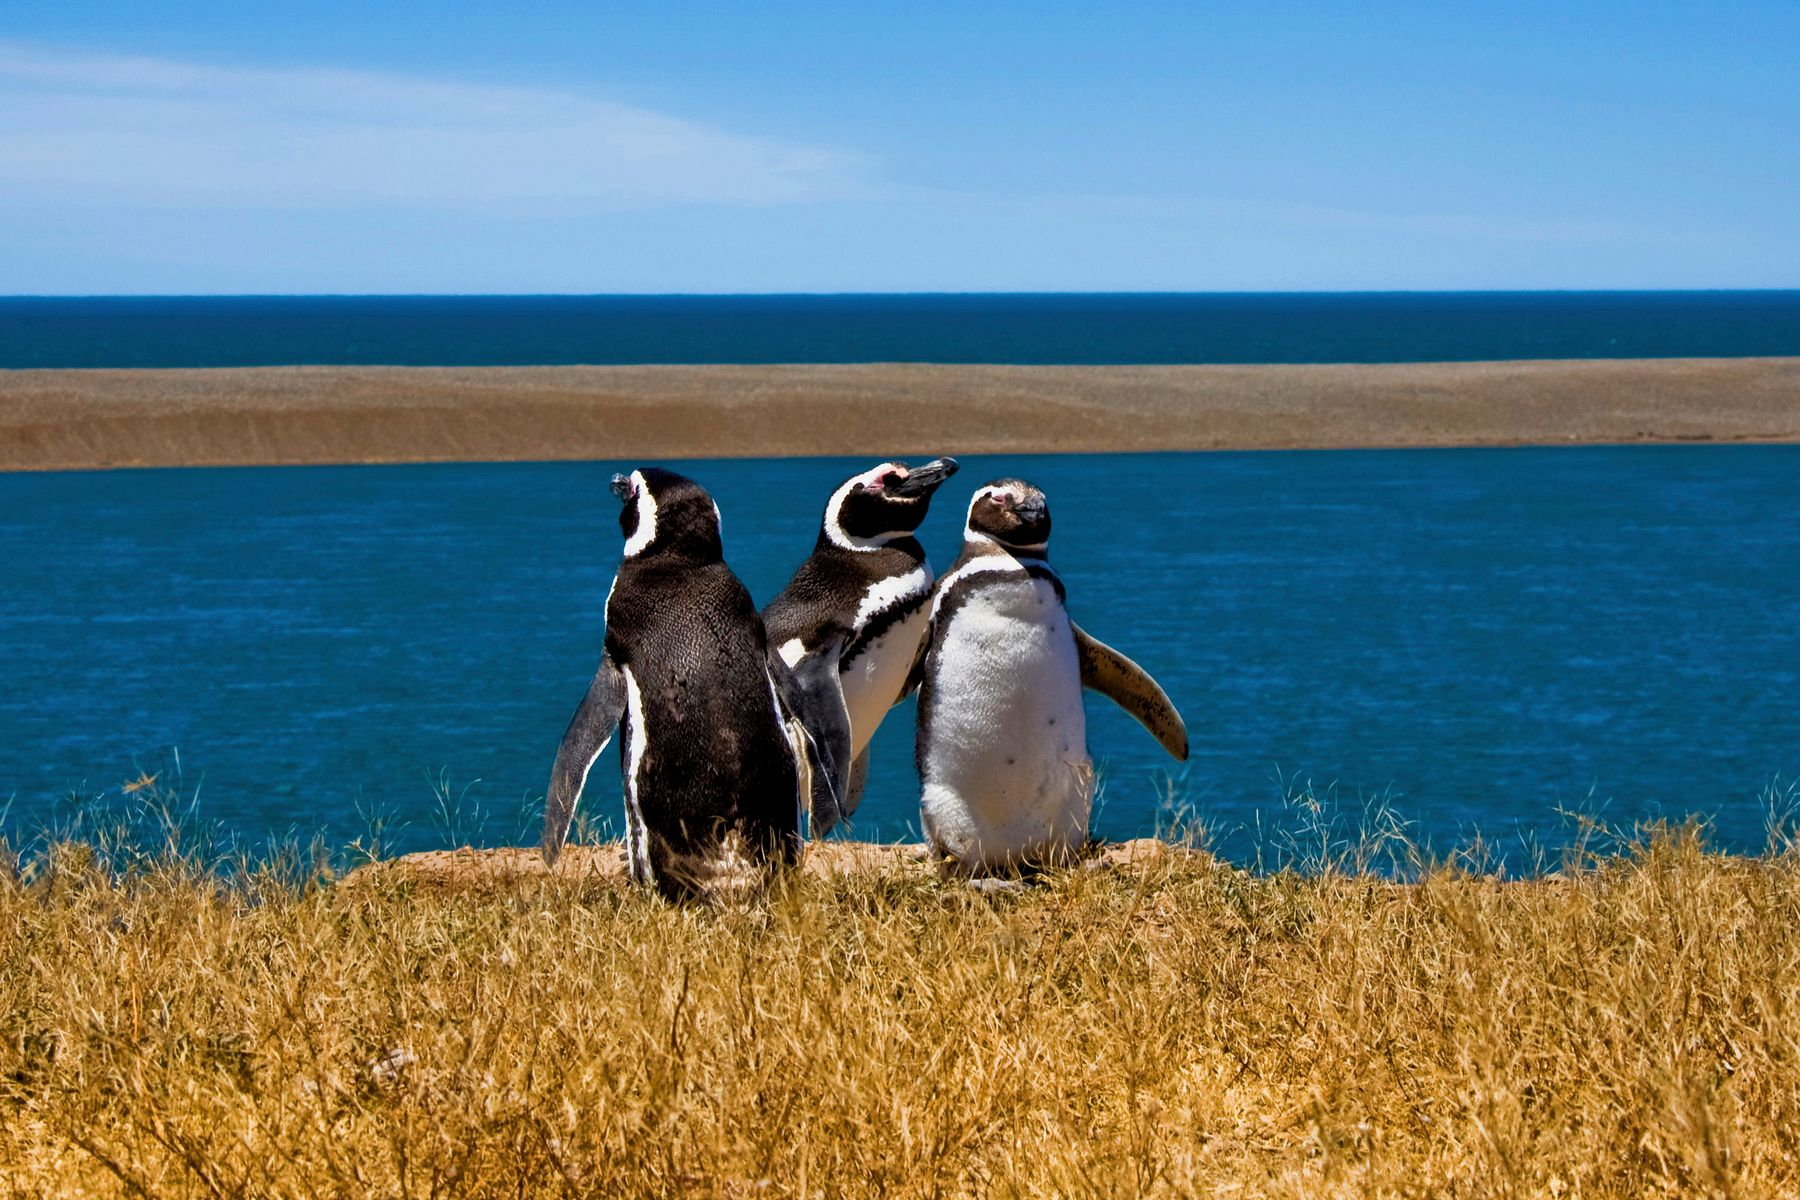 3 penguins relaxing on a sunny day in the mountains of southern Argentina